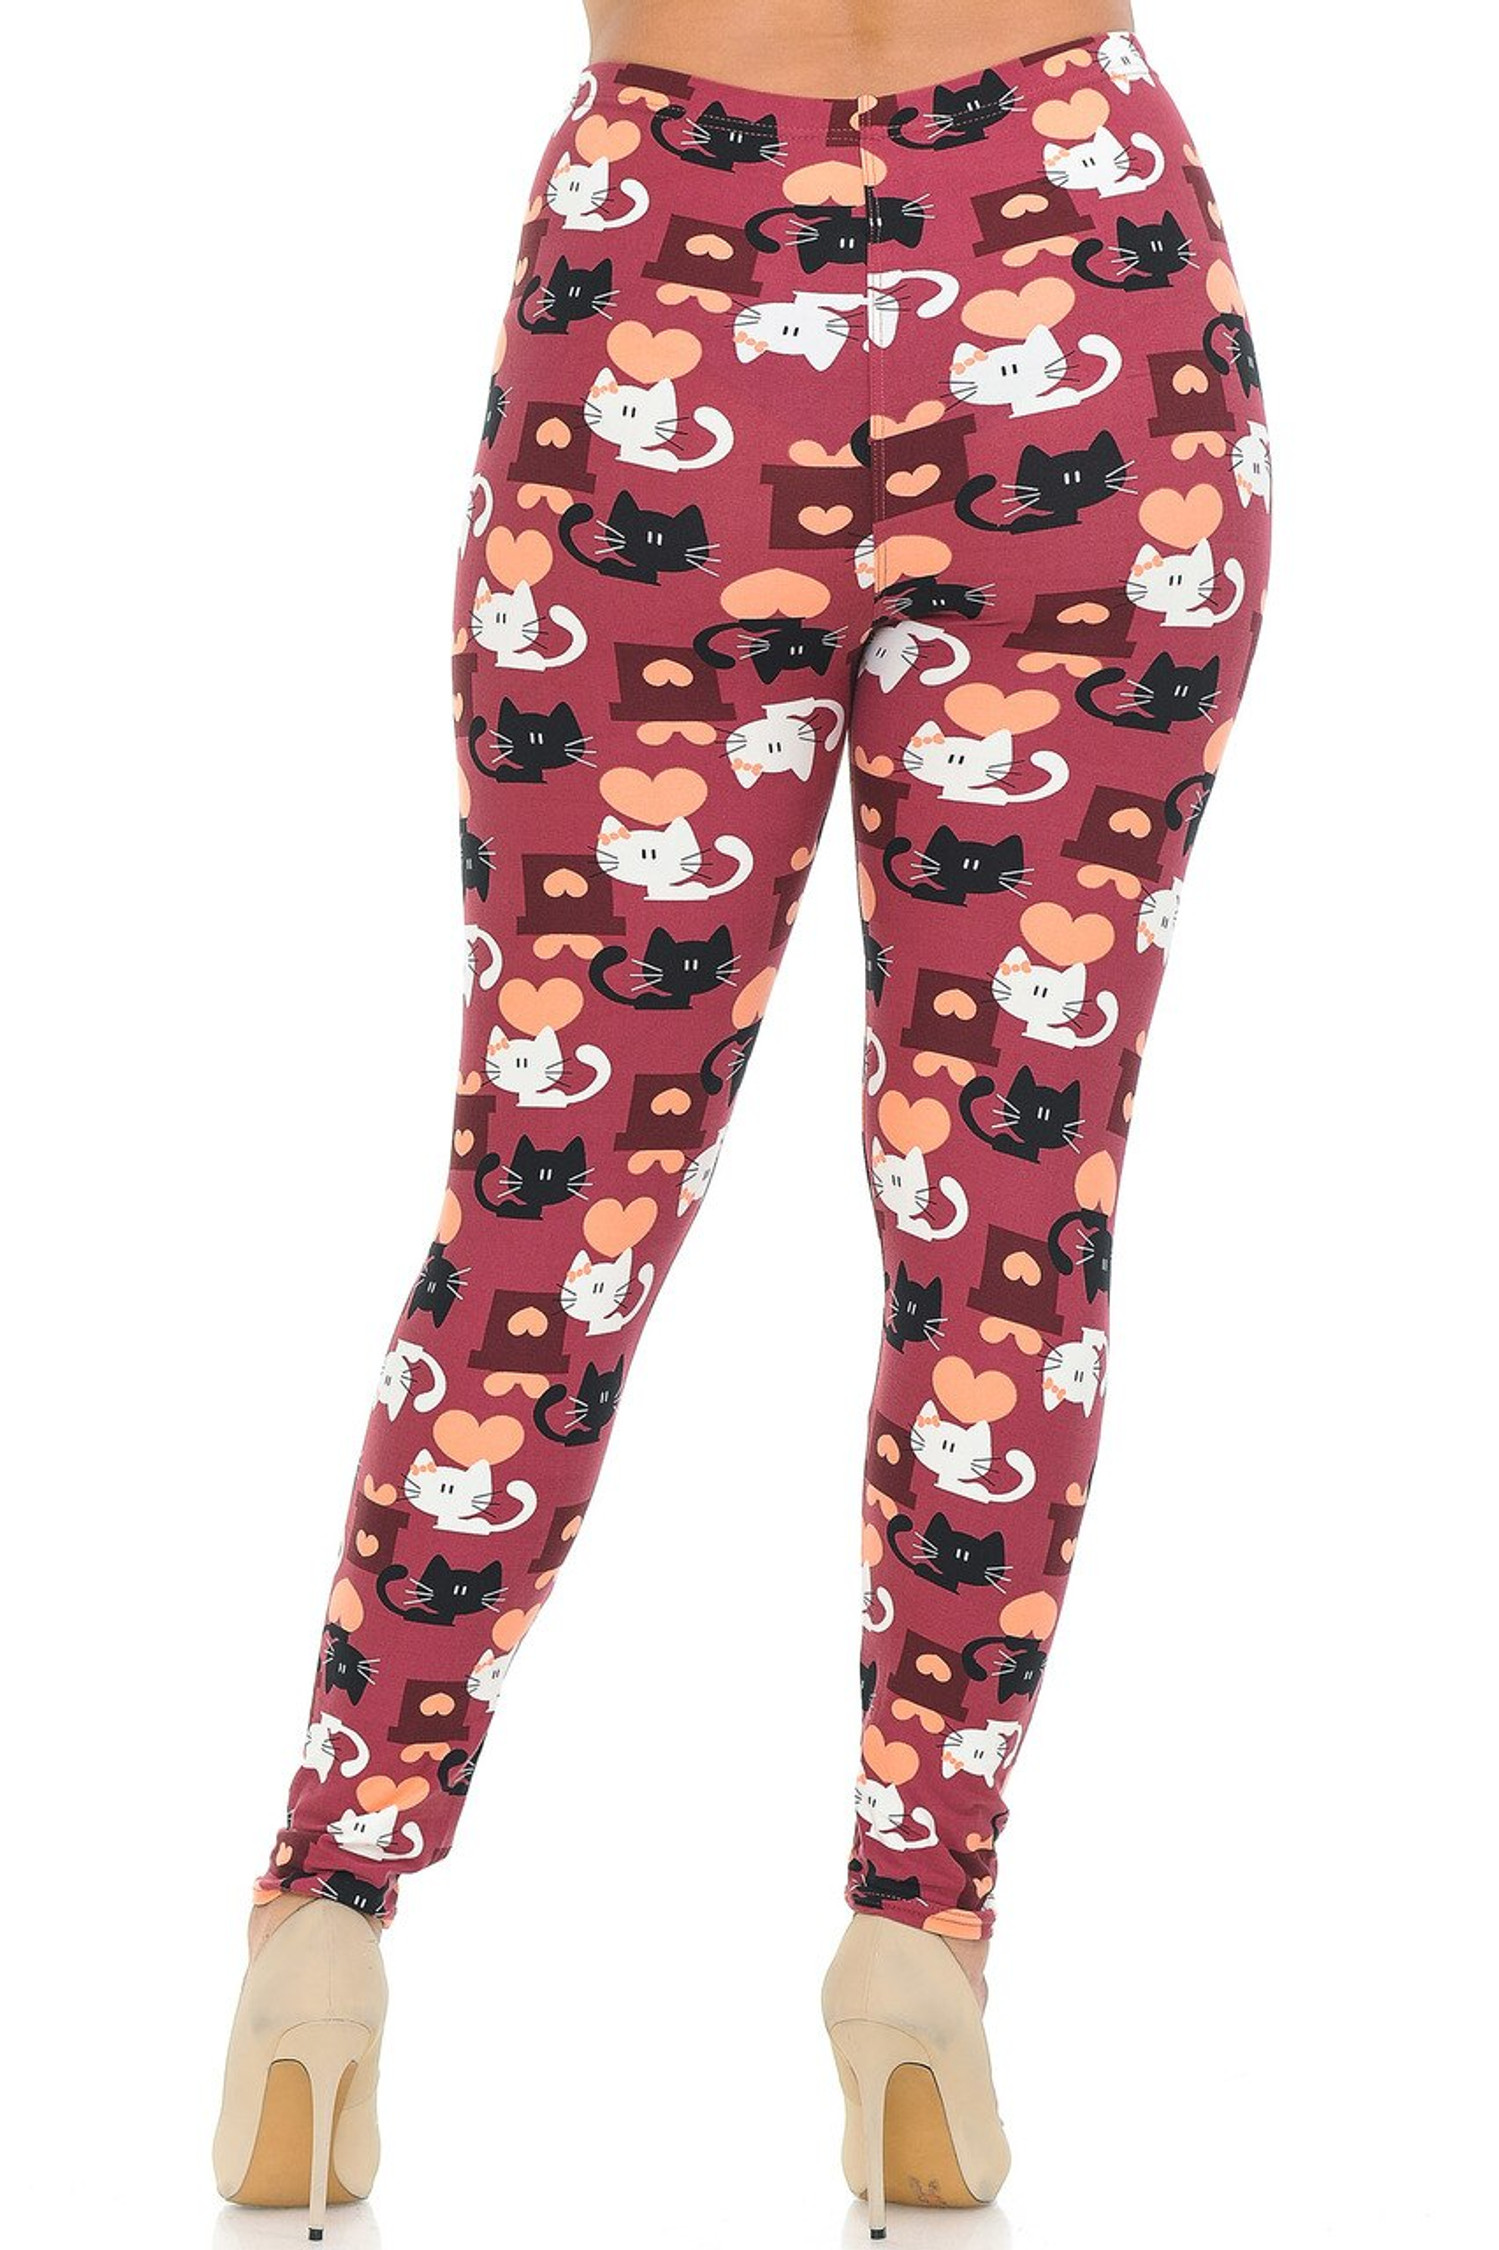 Lovable Kitty Cats Plus Size Buttery Soft Leggings